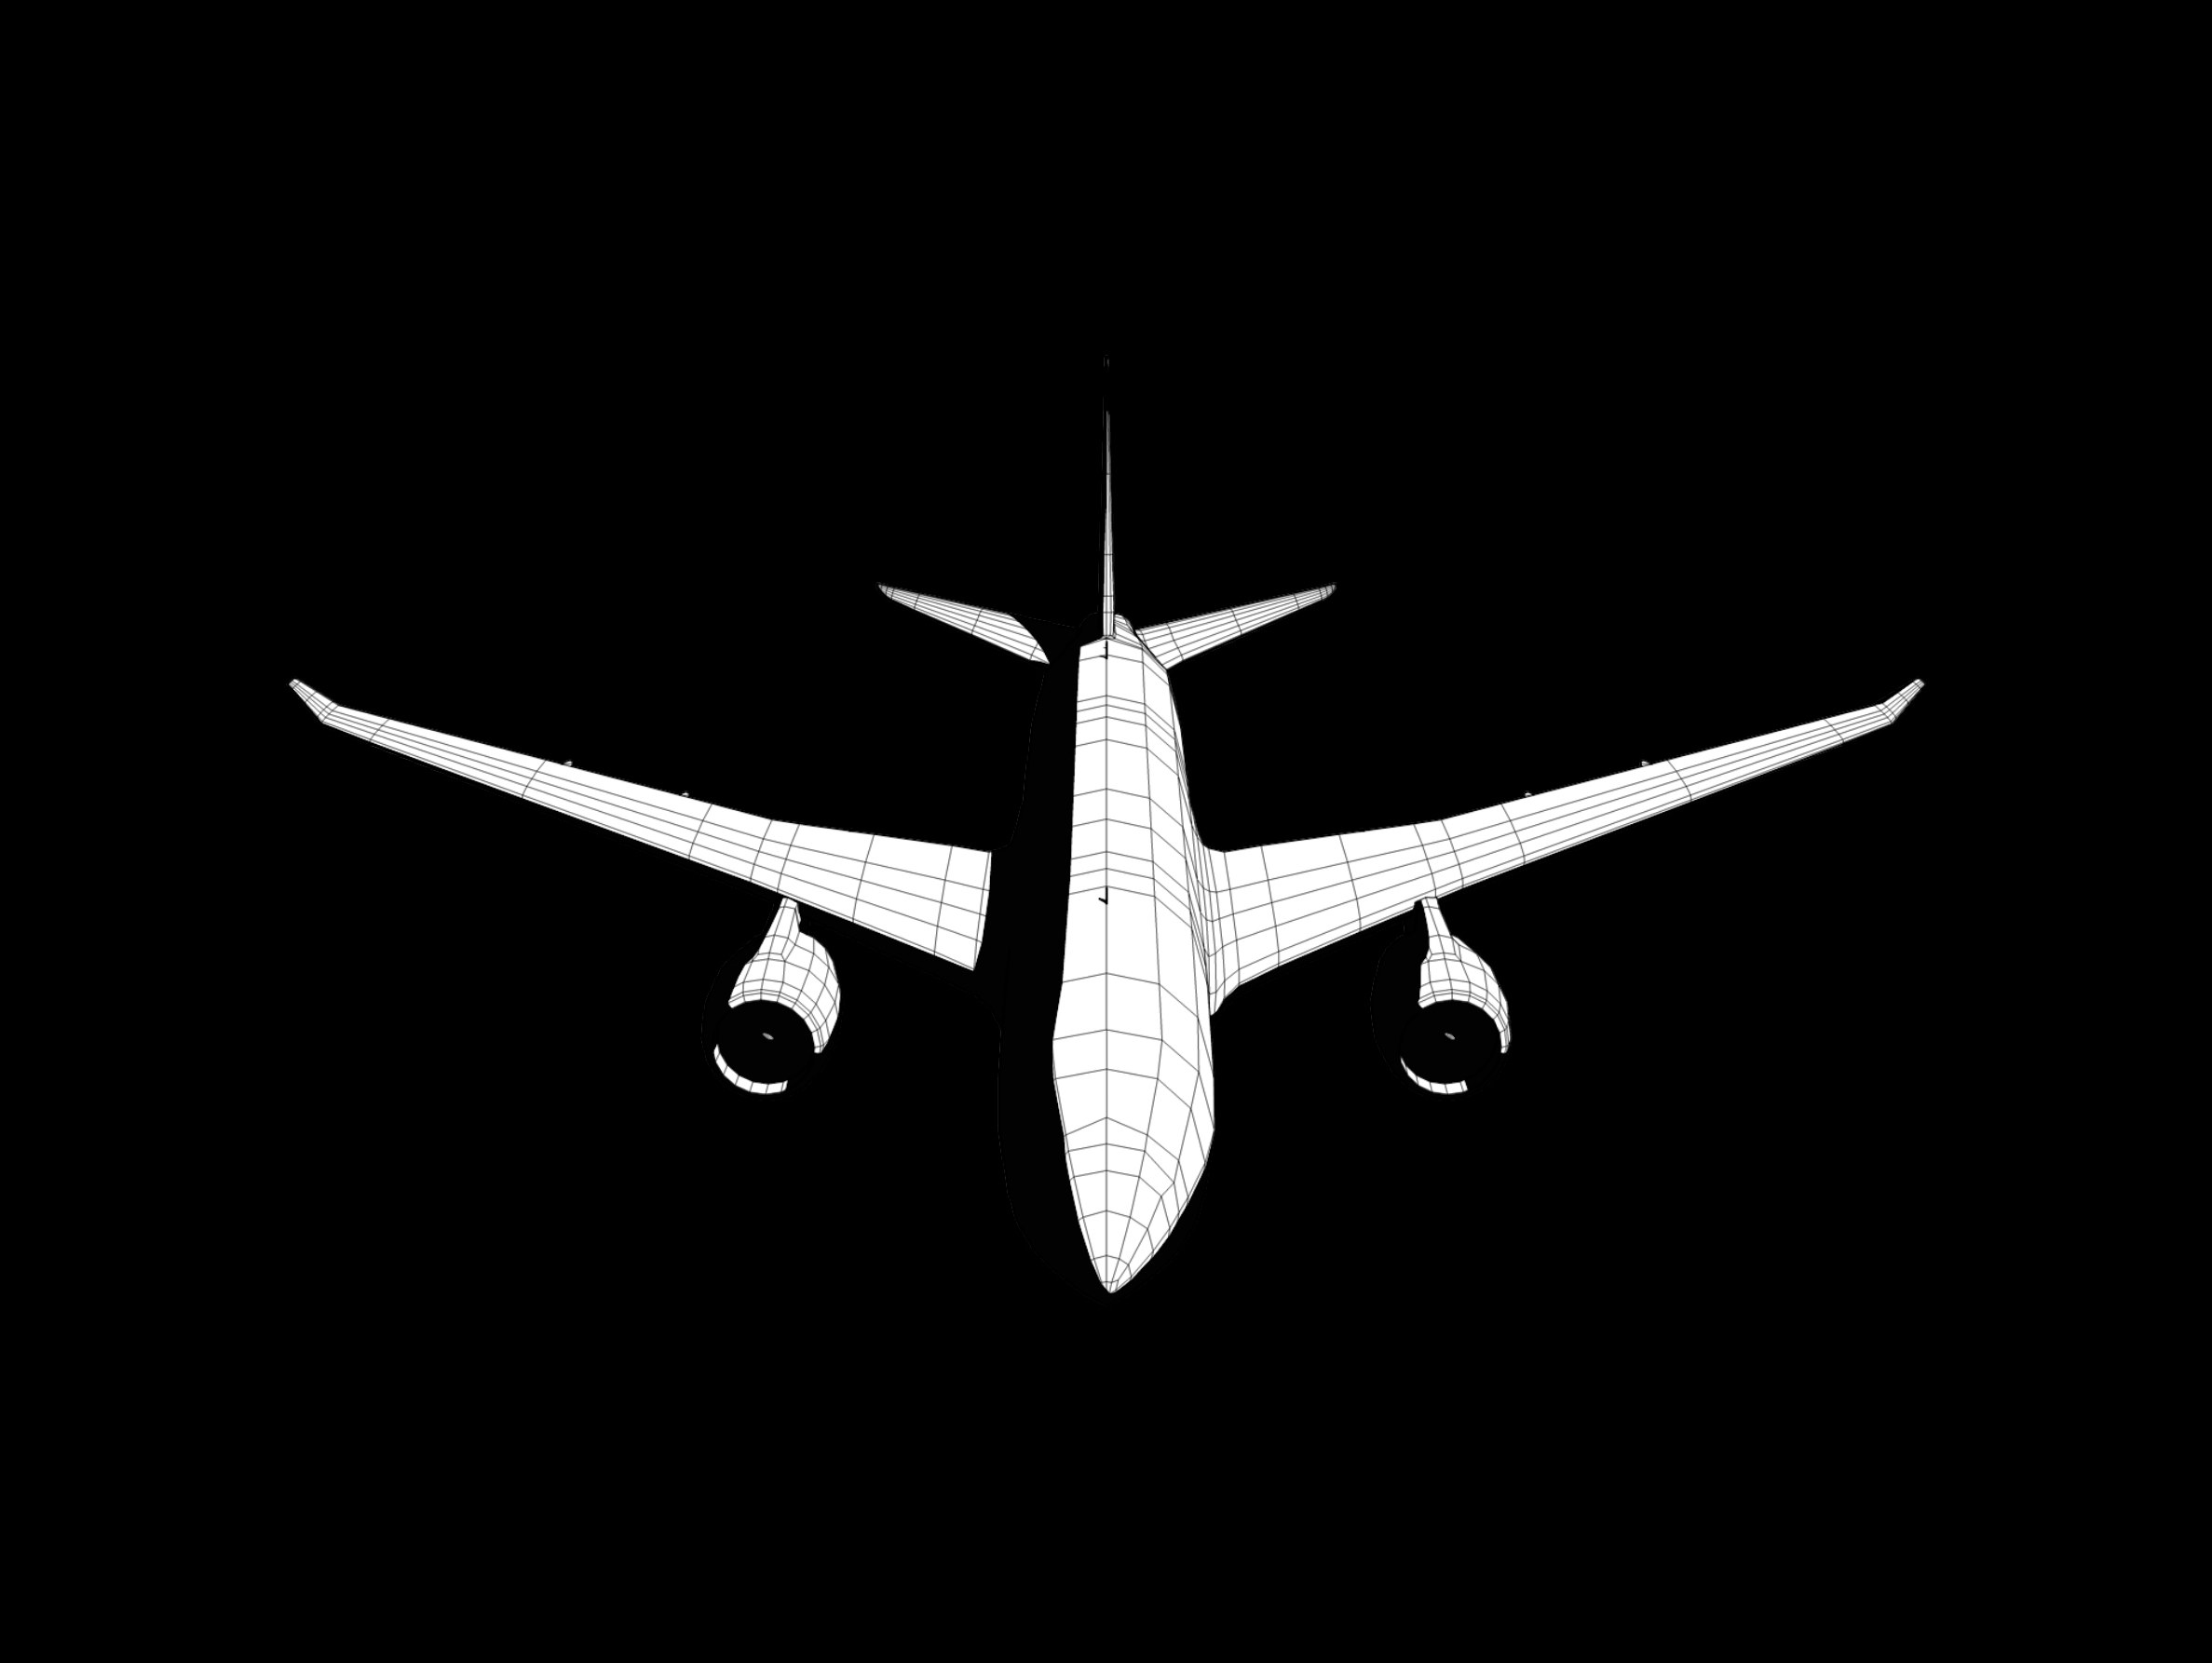 Airplane with tail wheel clipart black and white clipart free library How to Fly a Plane in an Emergency Situation | WIRED clipart free library